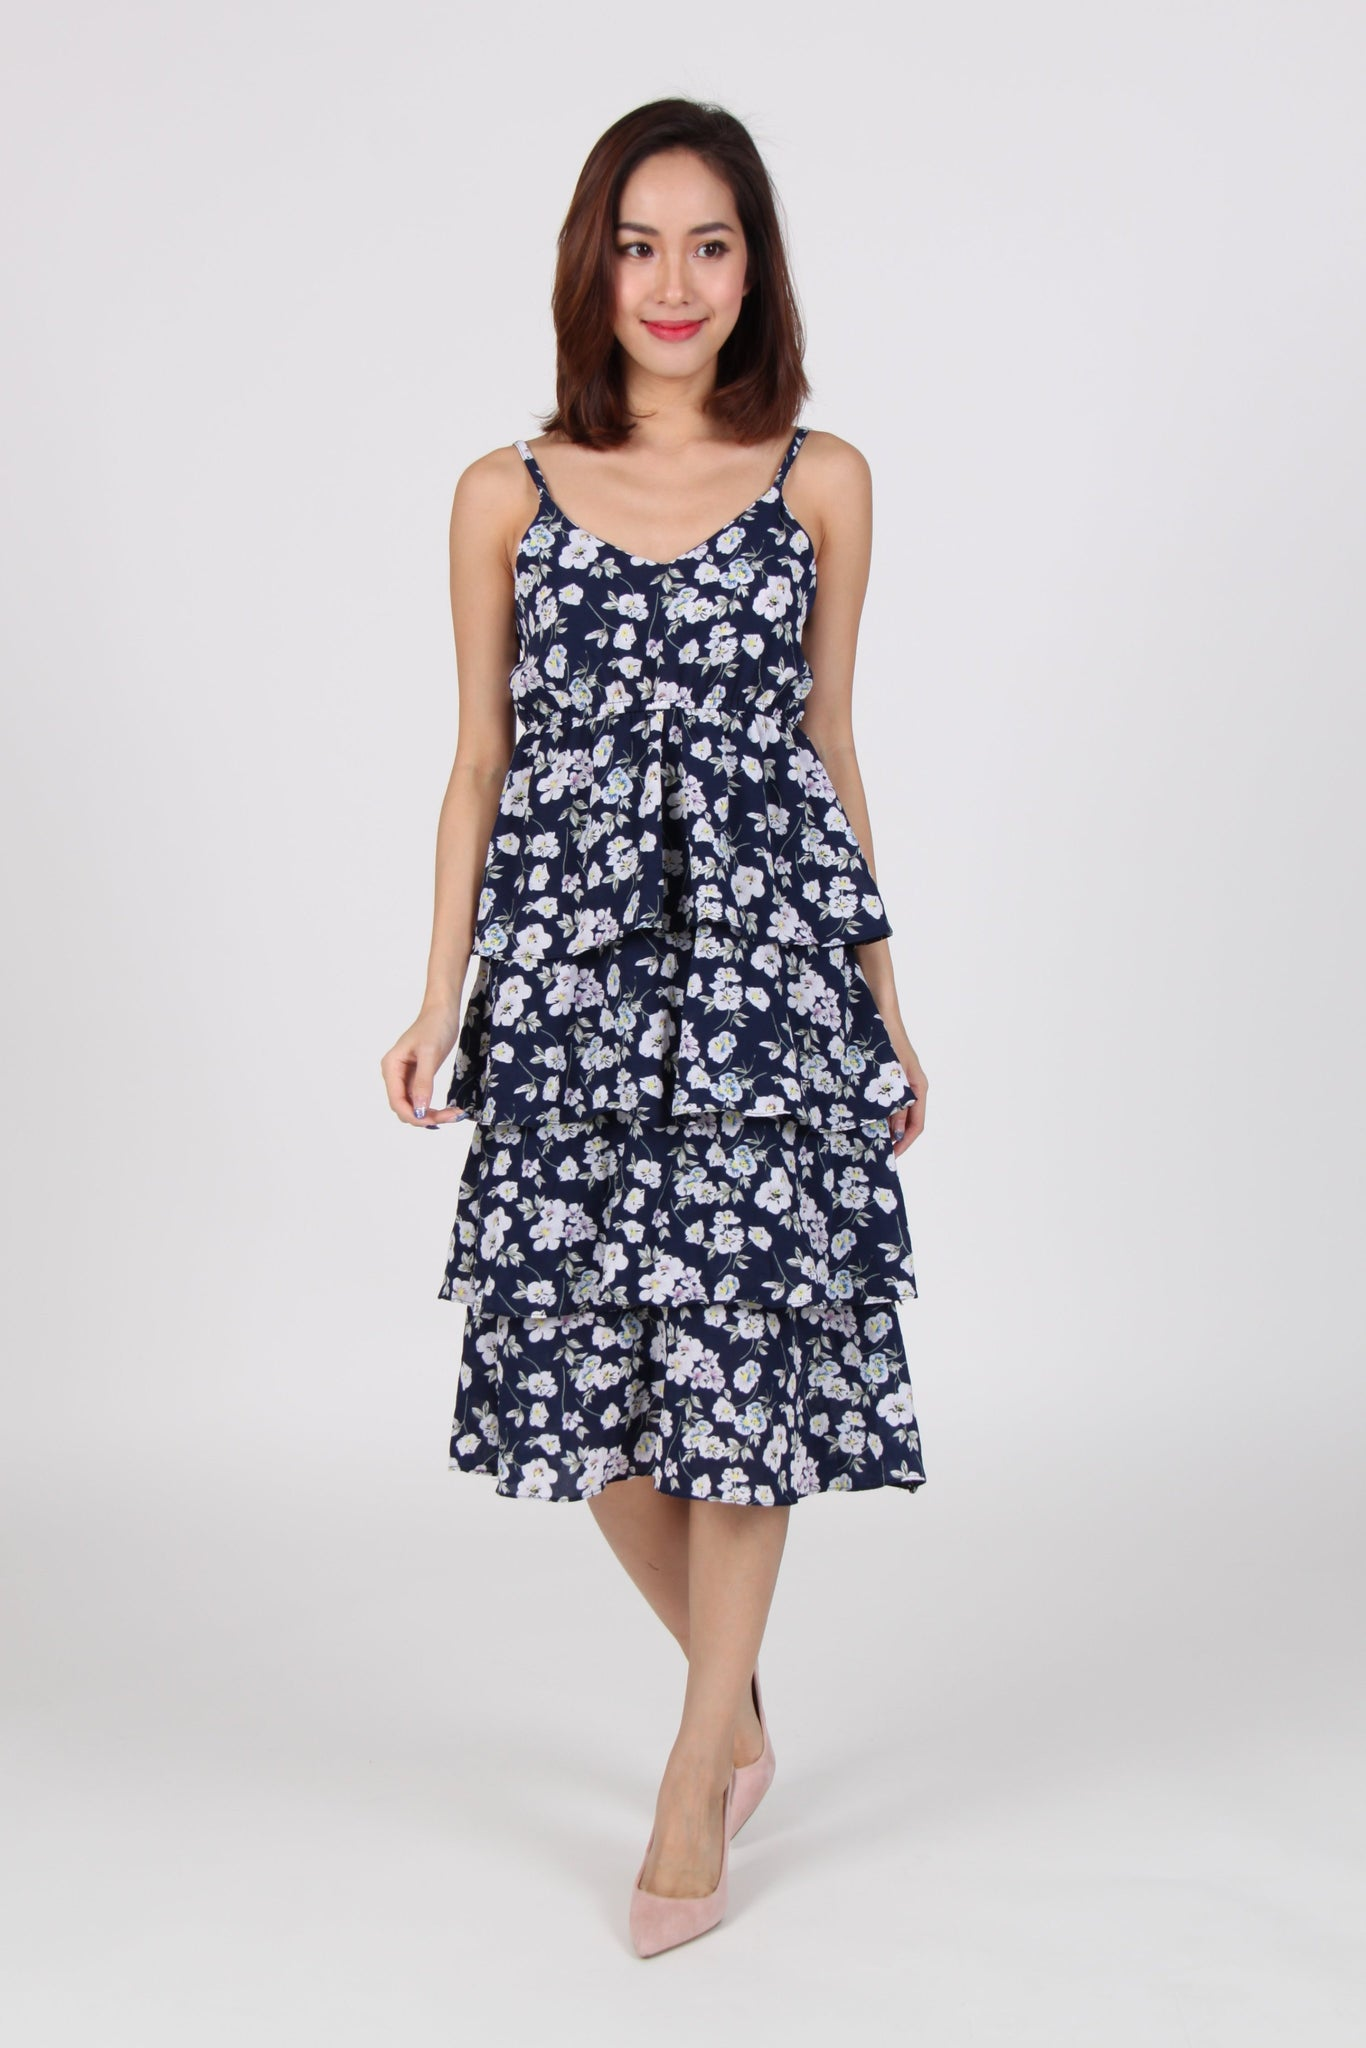 Floral Spag Layered Midi Dress in Navy Blue